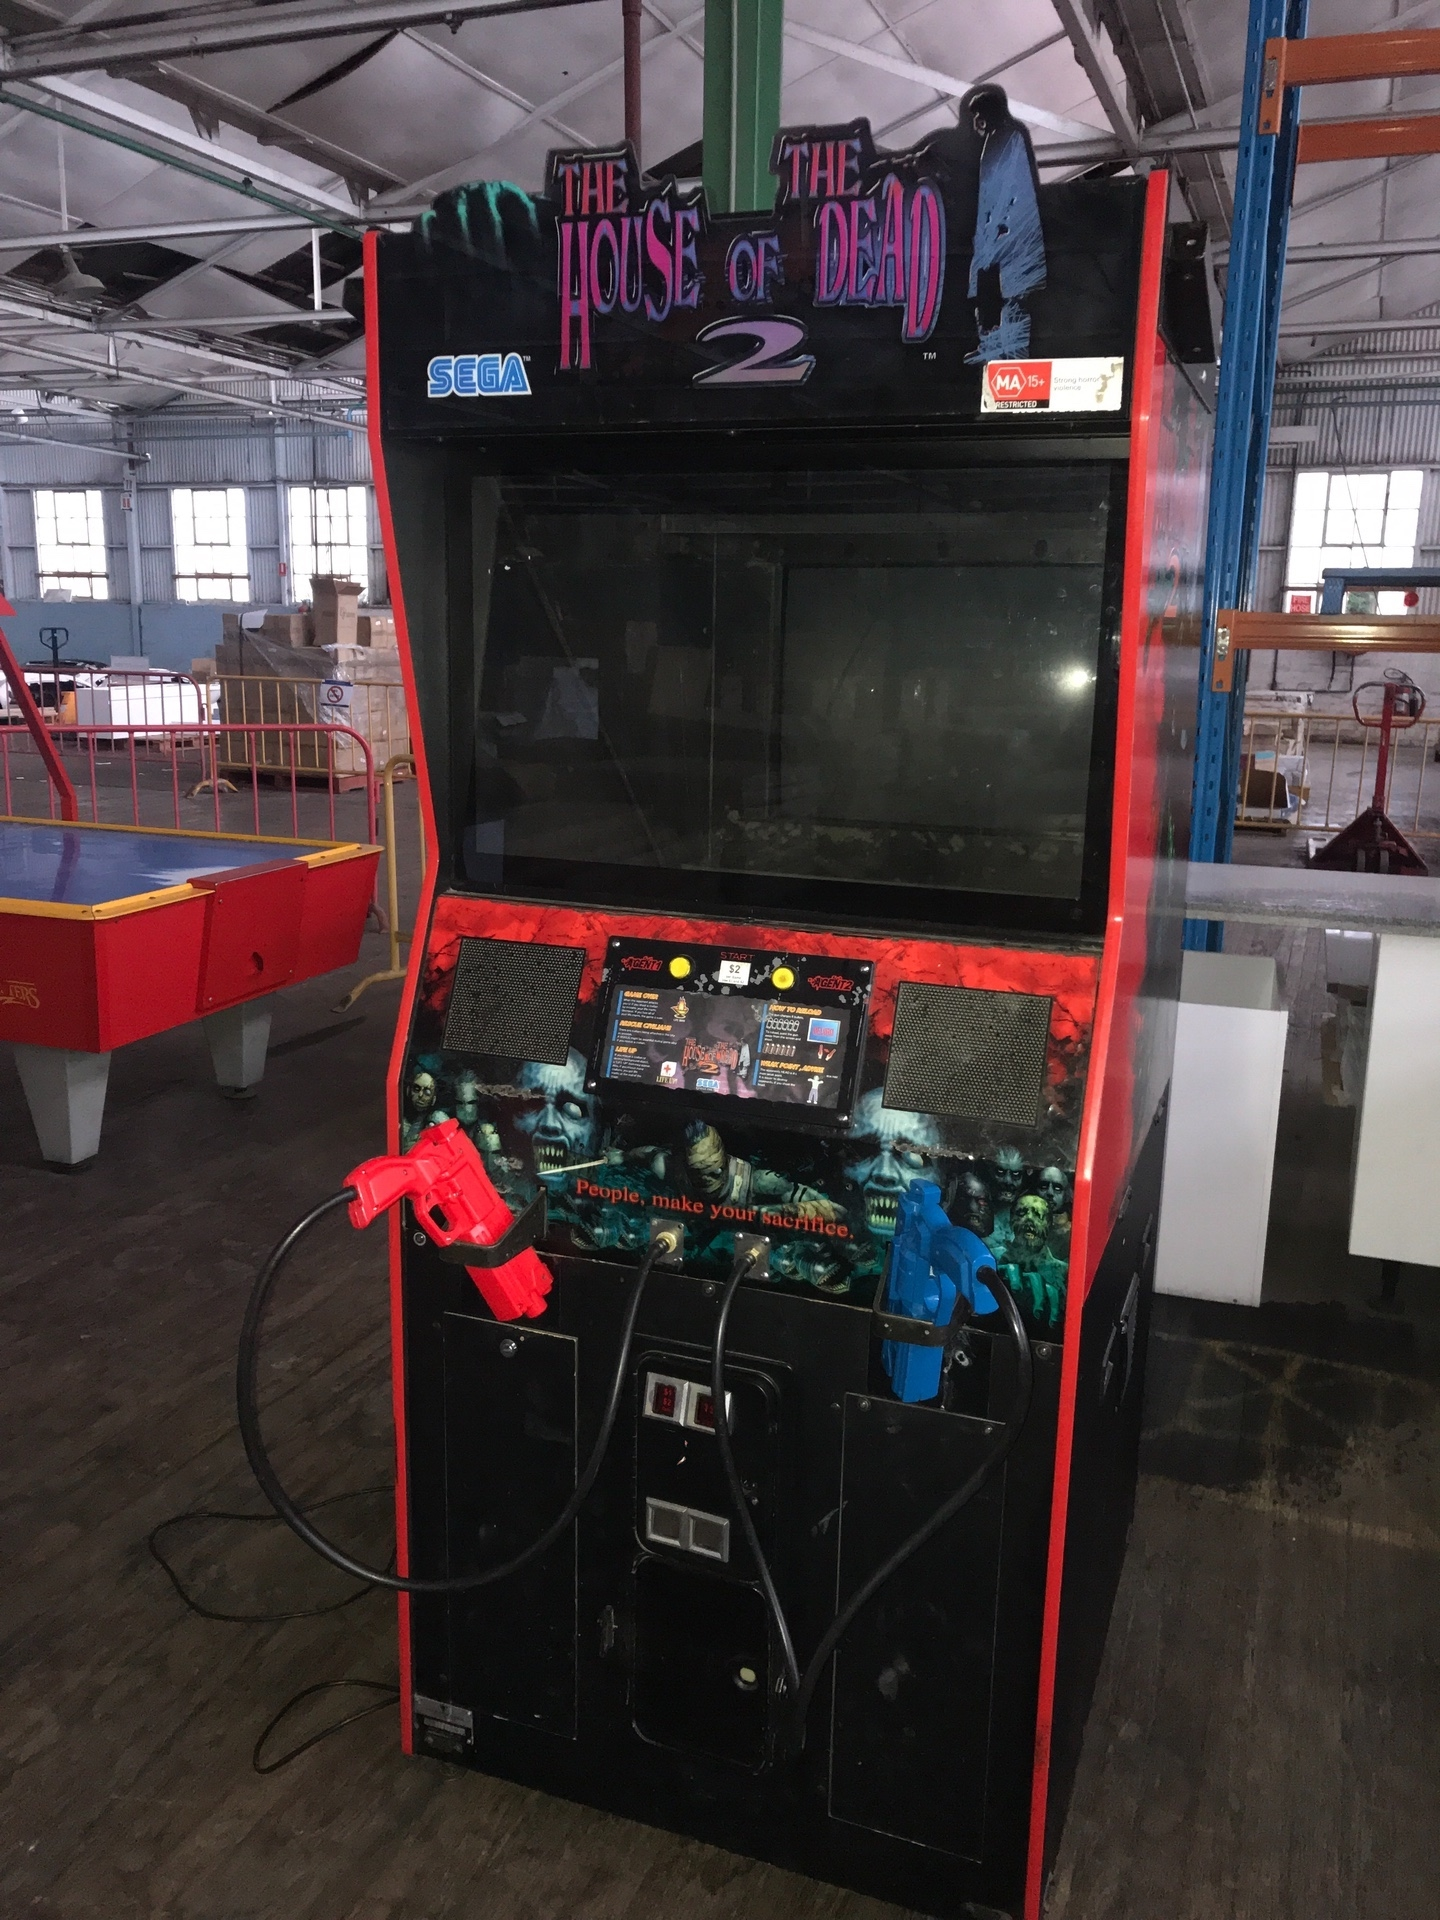 House Of The Dead 2 Arcade Game Sega Coin Mechanism Appears To